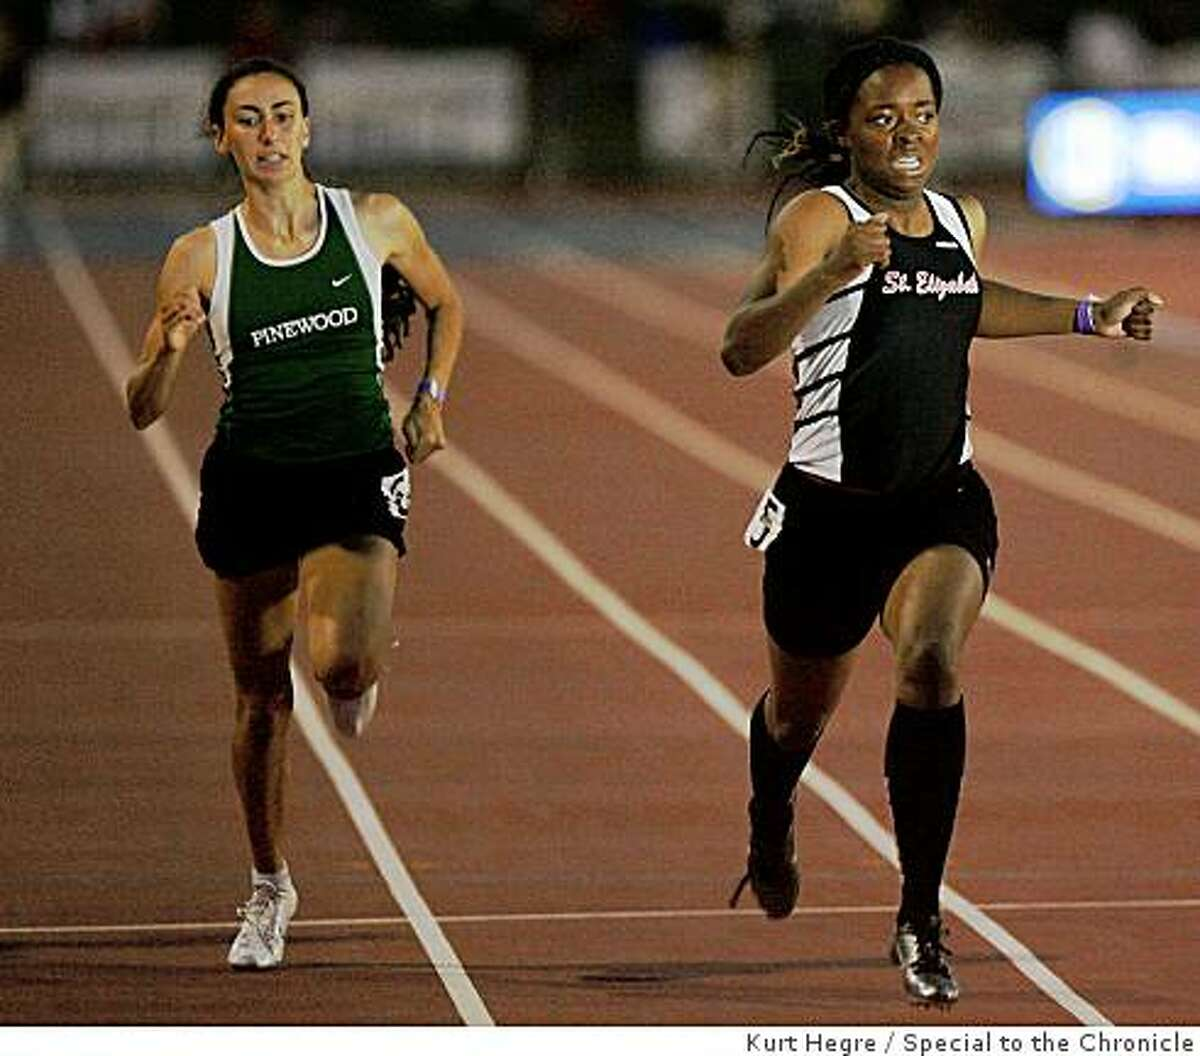 Ashton Purvis of Saint Elizabeth , right, passes Angela Gradiska of Pinewood to win the 200 meter race during the finals of the California State Track and Field Championships in Clovis, Ca Saturday May 6,2009.